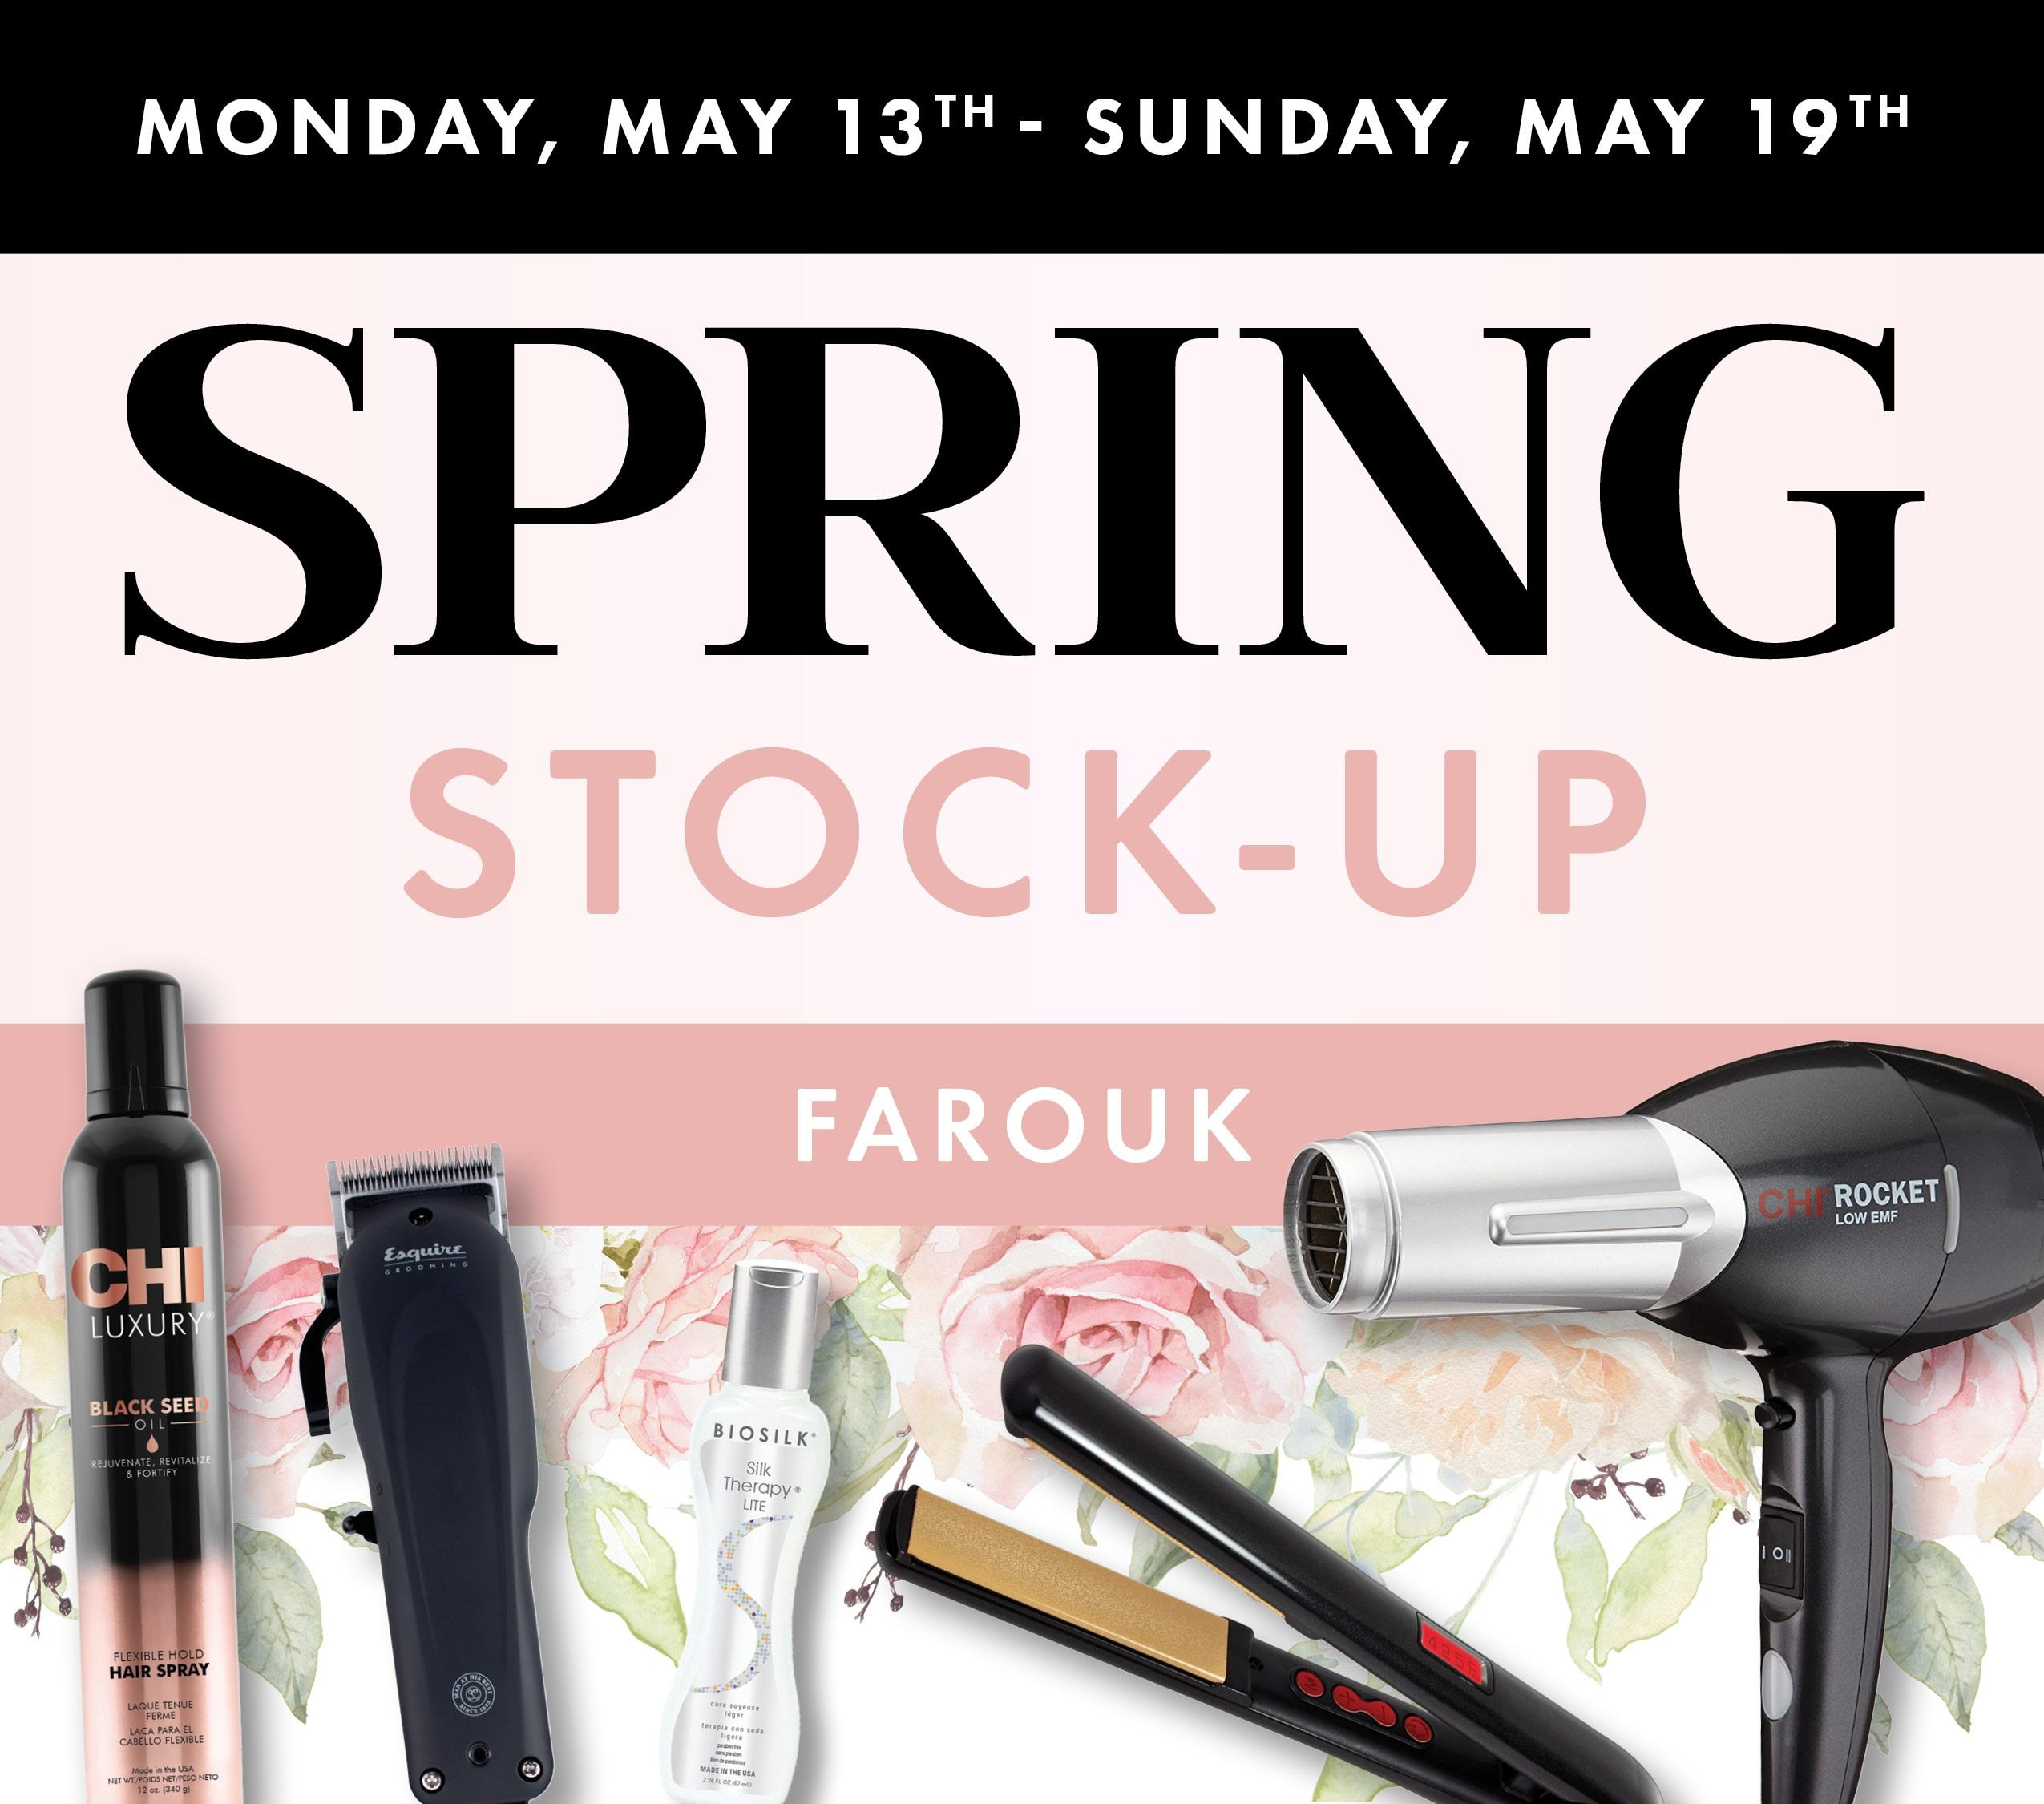 Spring Stock Up Farouk